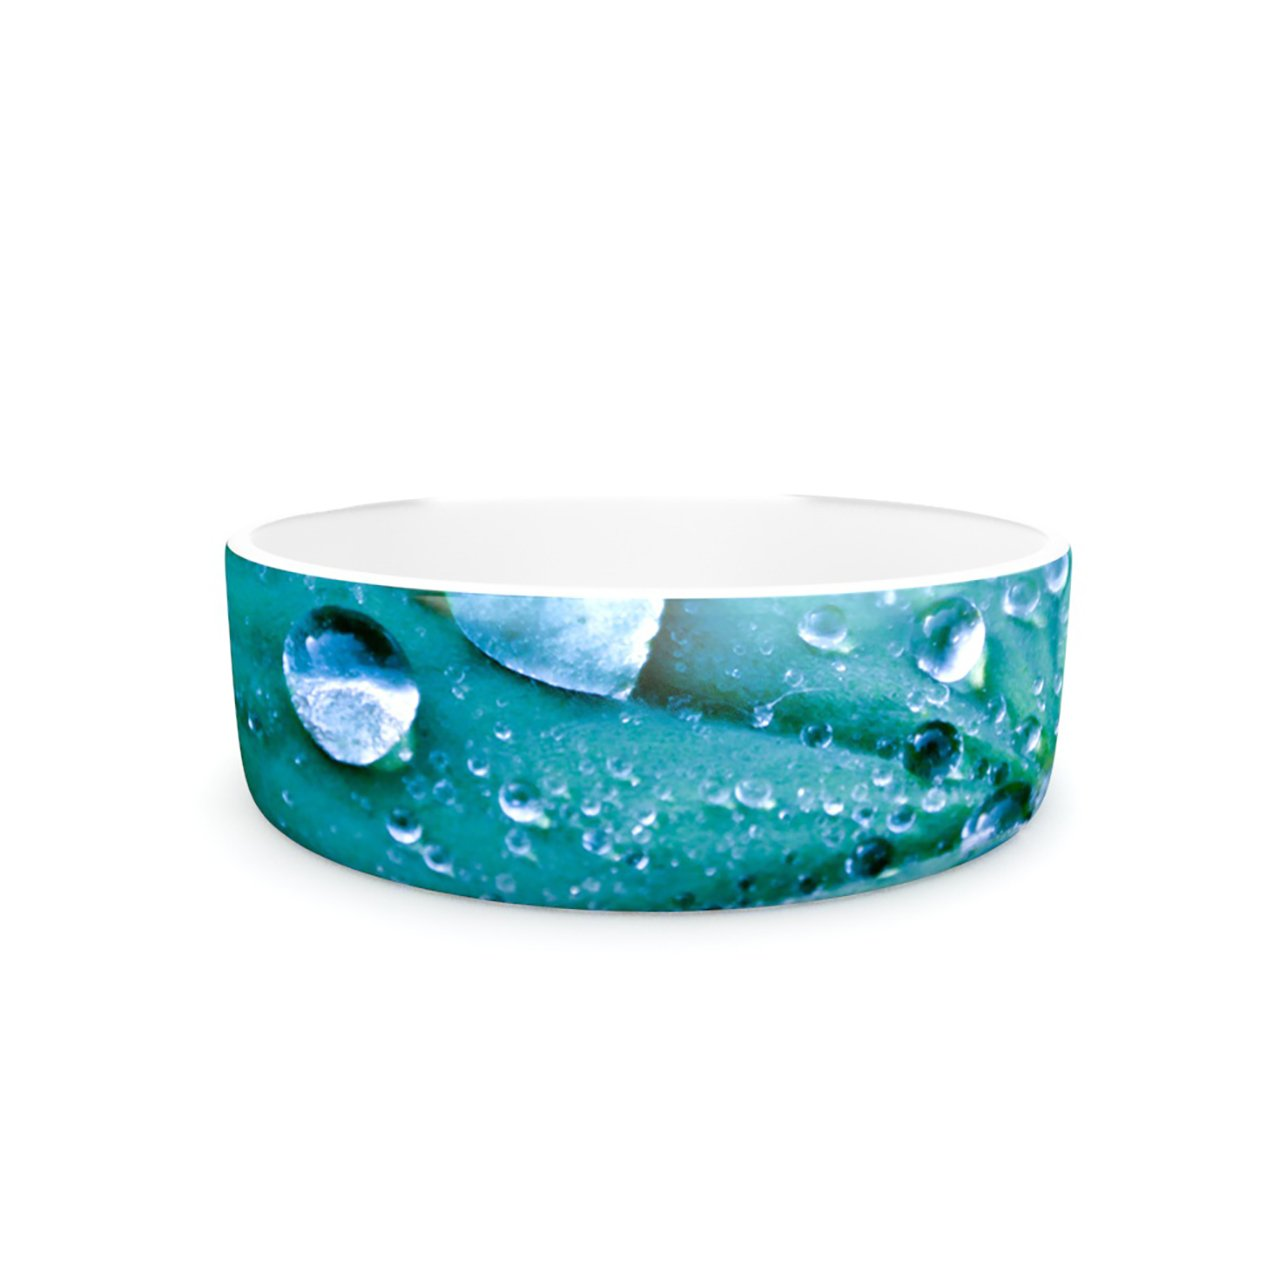 Kess InHouse Iris Lehnhardt Water Droplets Aqua  Pet Bowl, 7-Inch, Teal